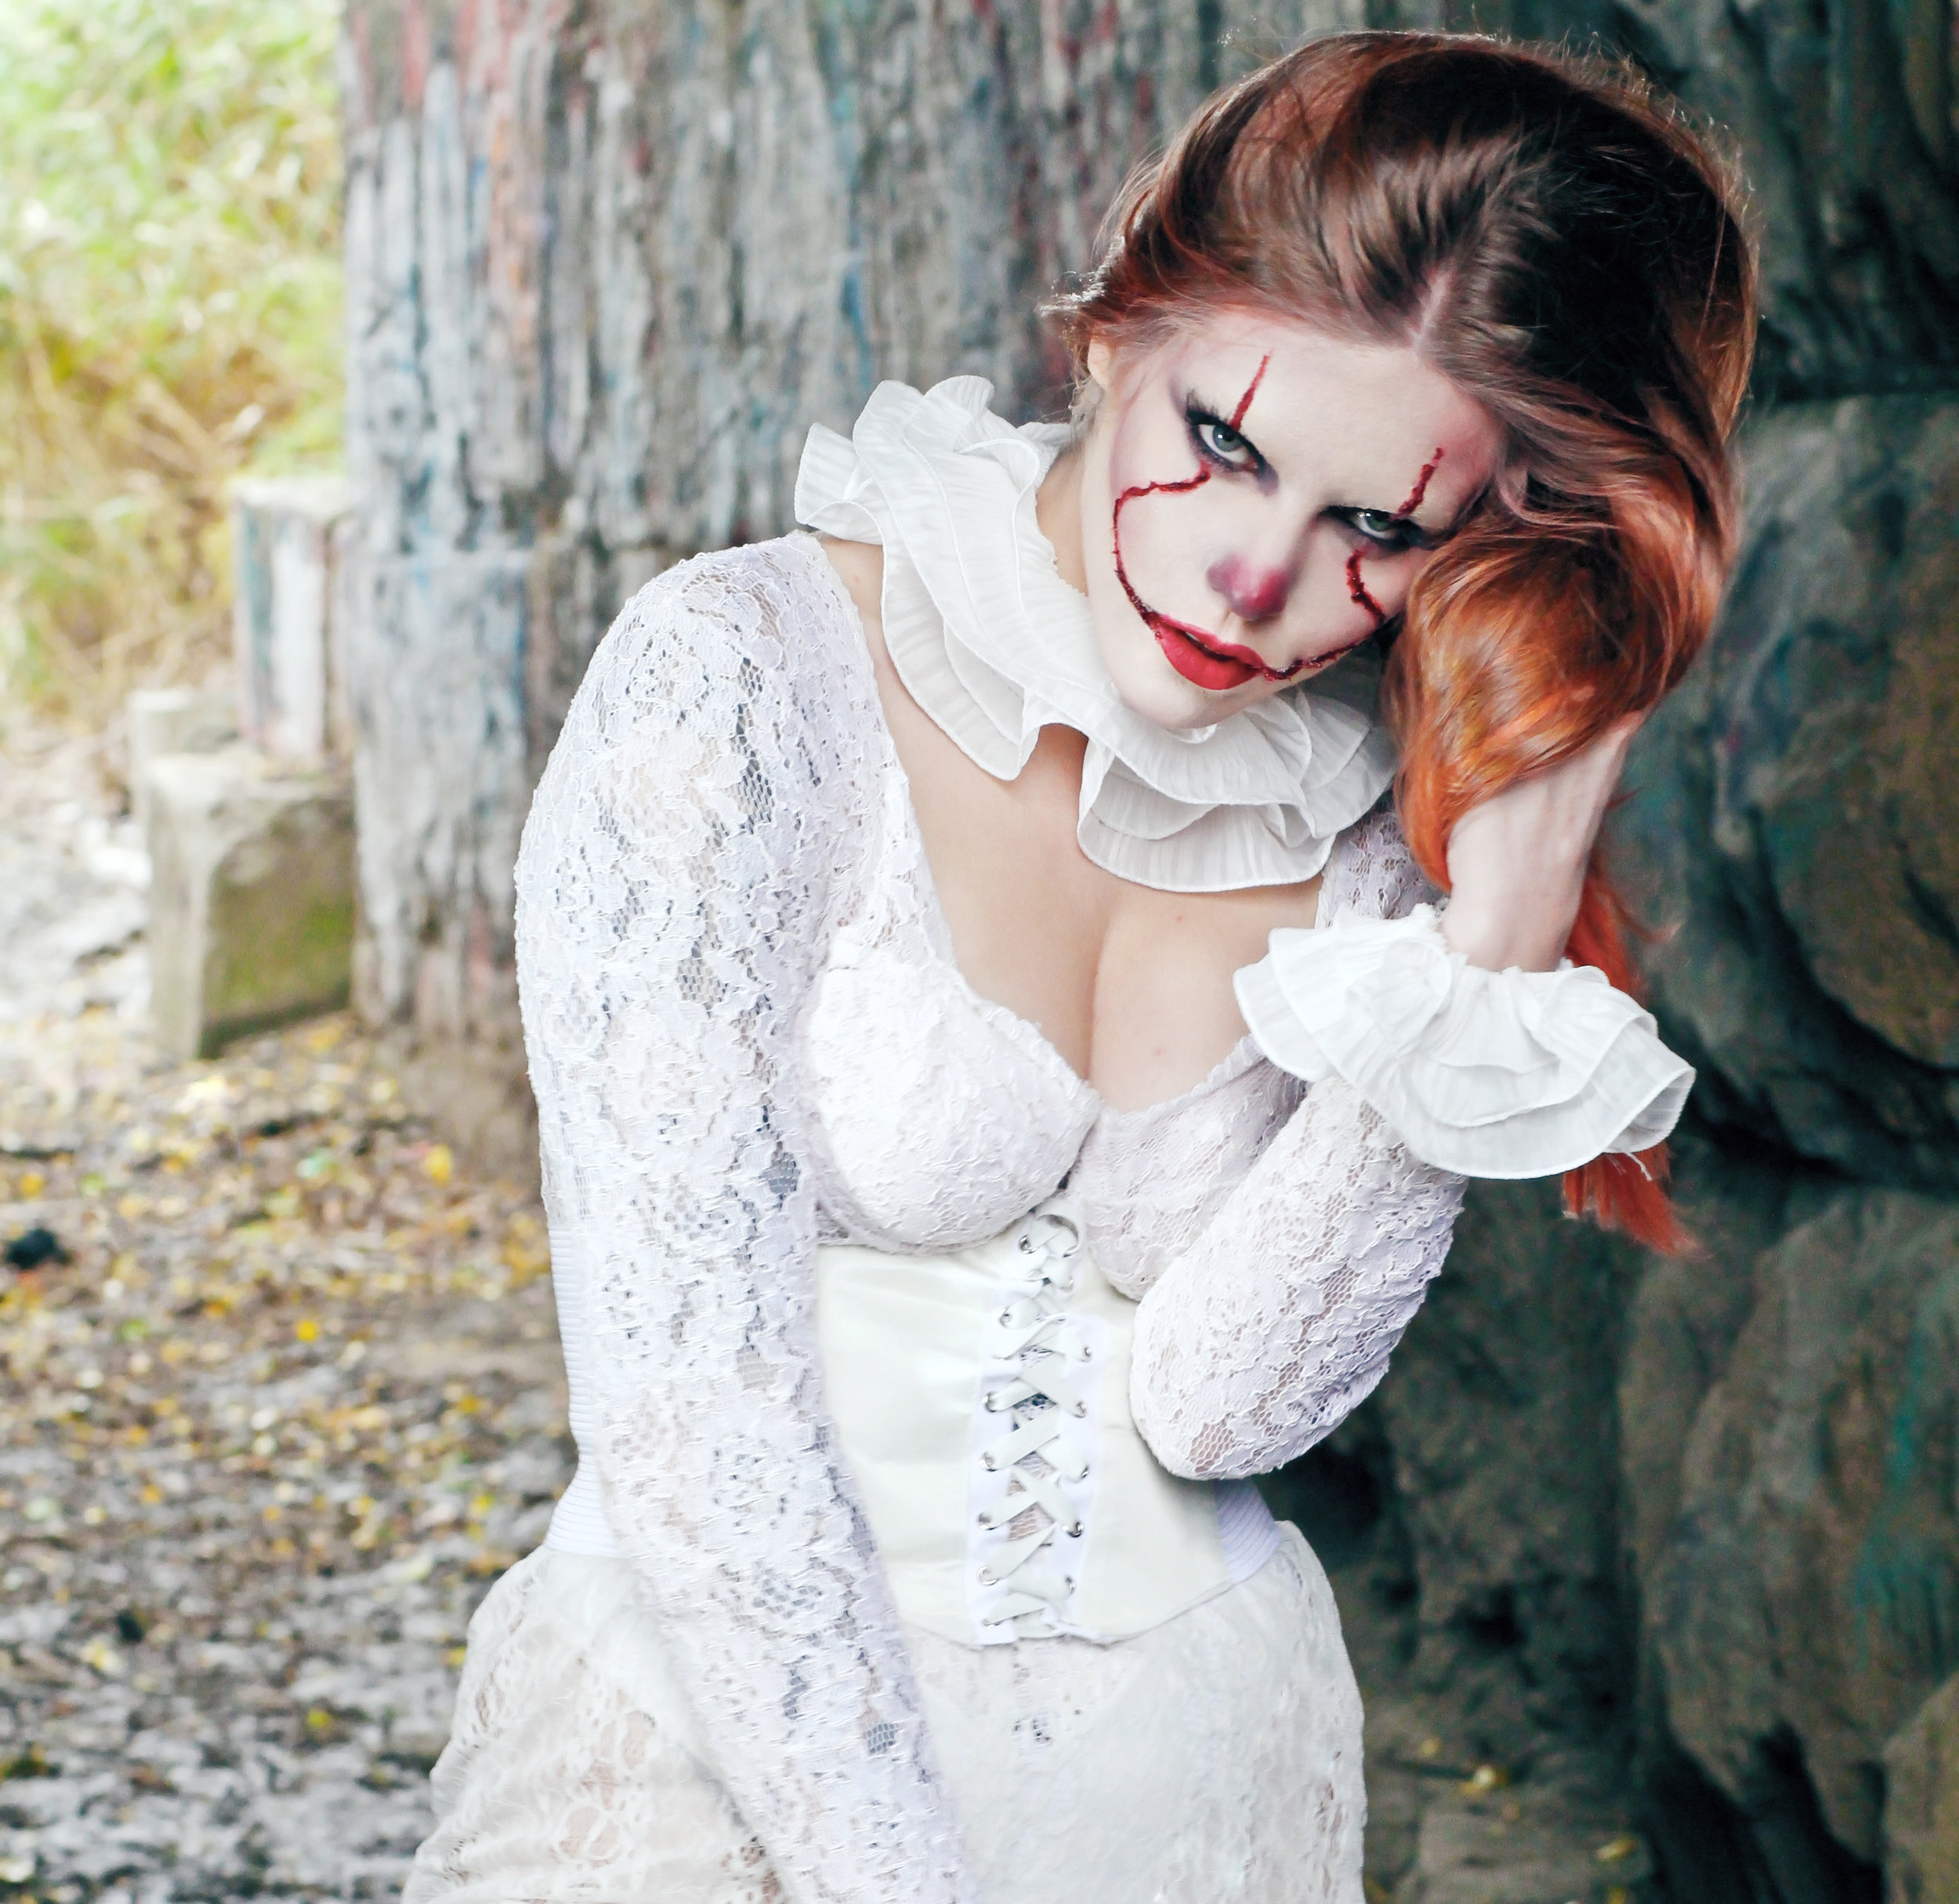 Jonna McKechnie (Model/MAC MUA) reimagined as Pennywise in custom GWG lace costume.